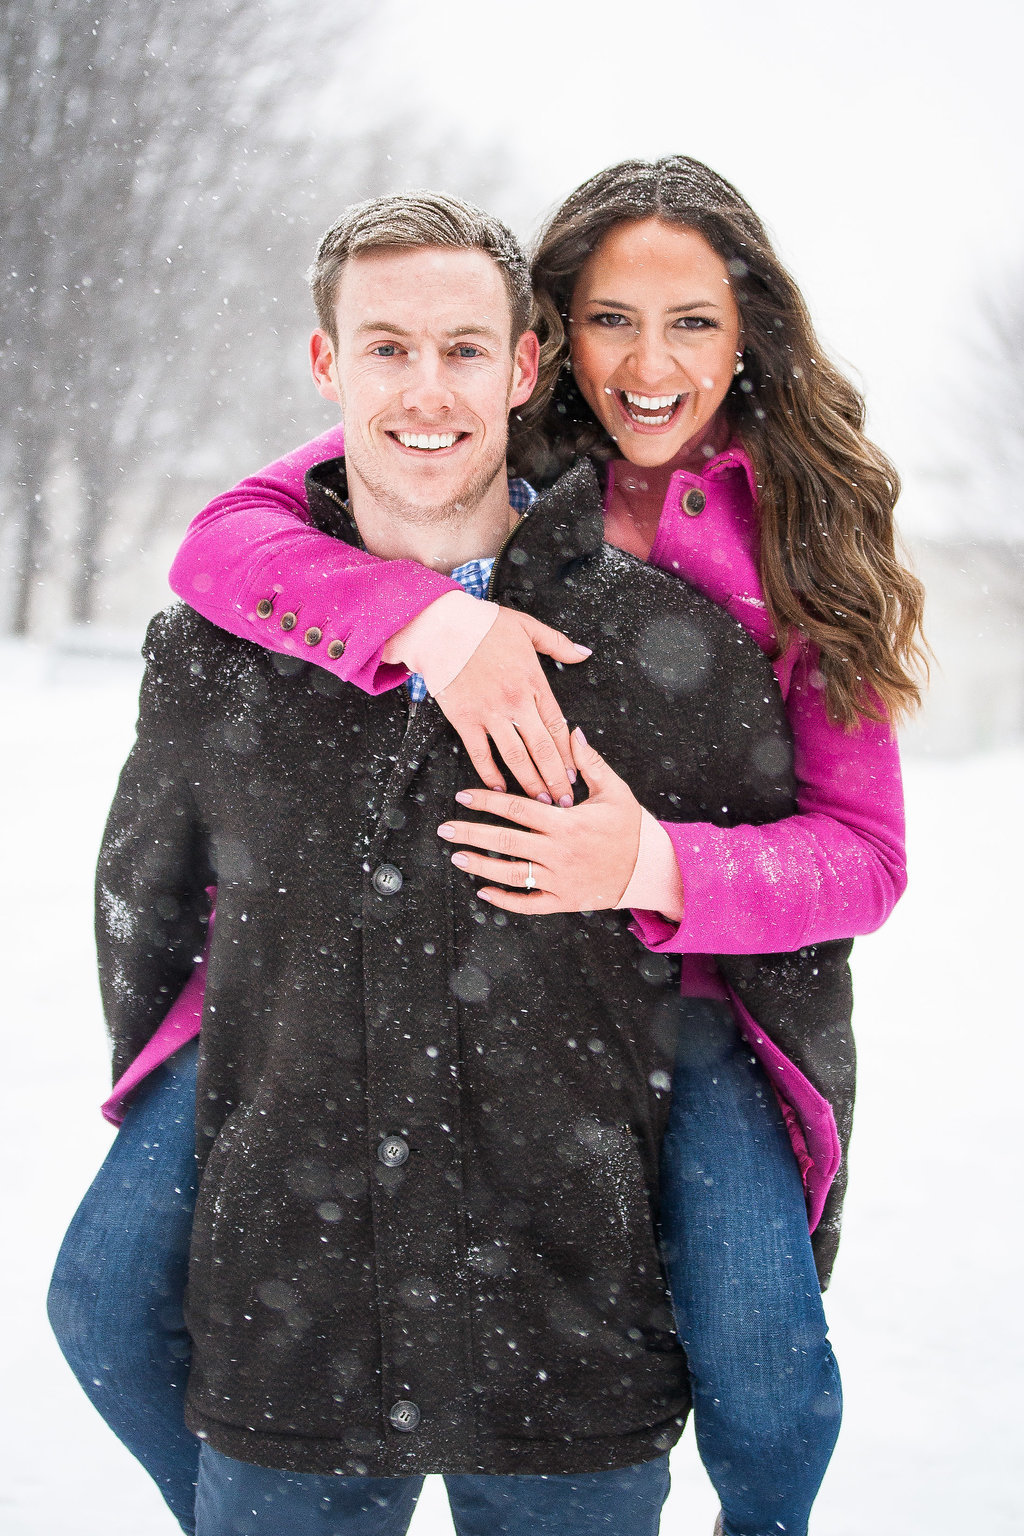 Millennium Park Chicago Illinois Winter Engagement Photographer Taylor Ingles 40